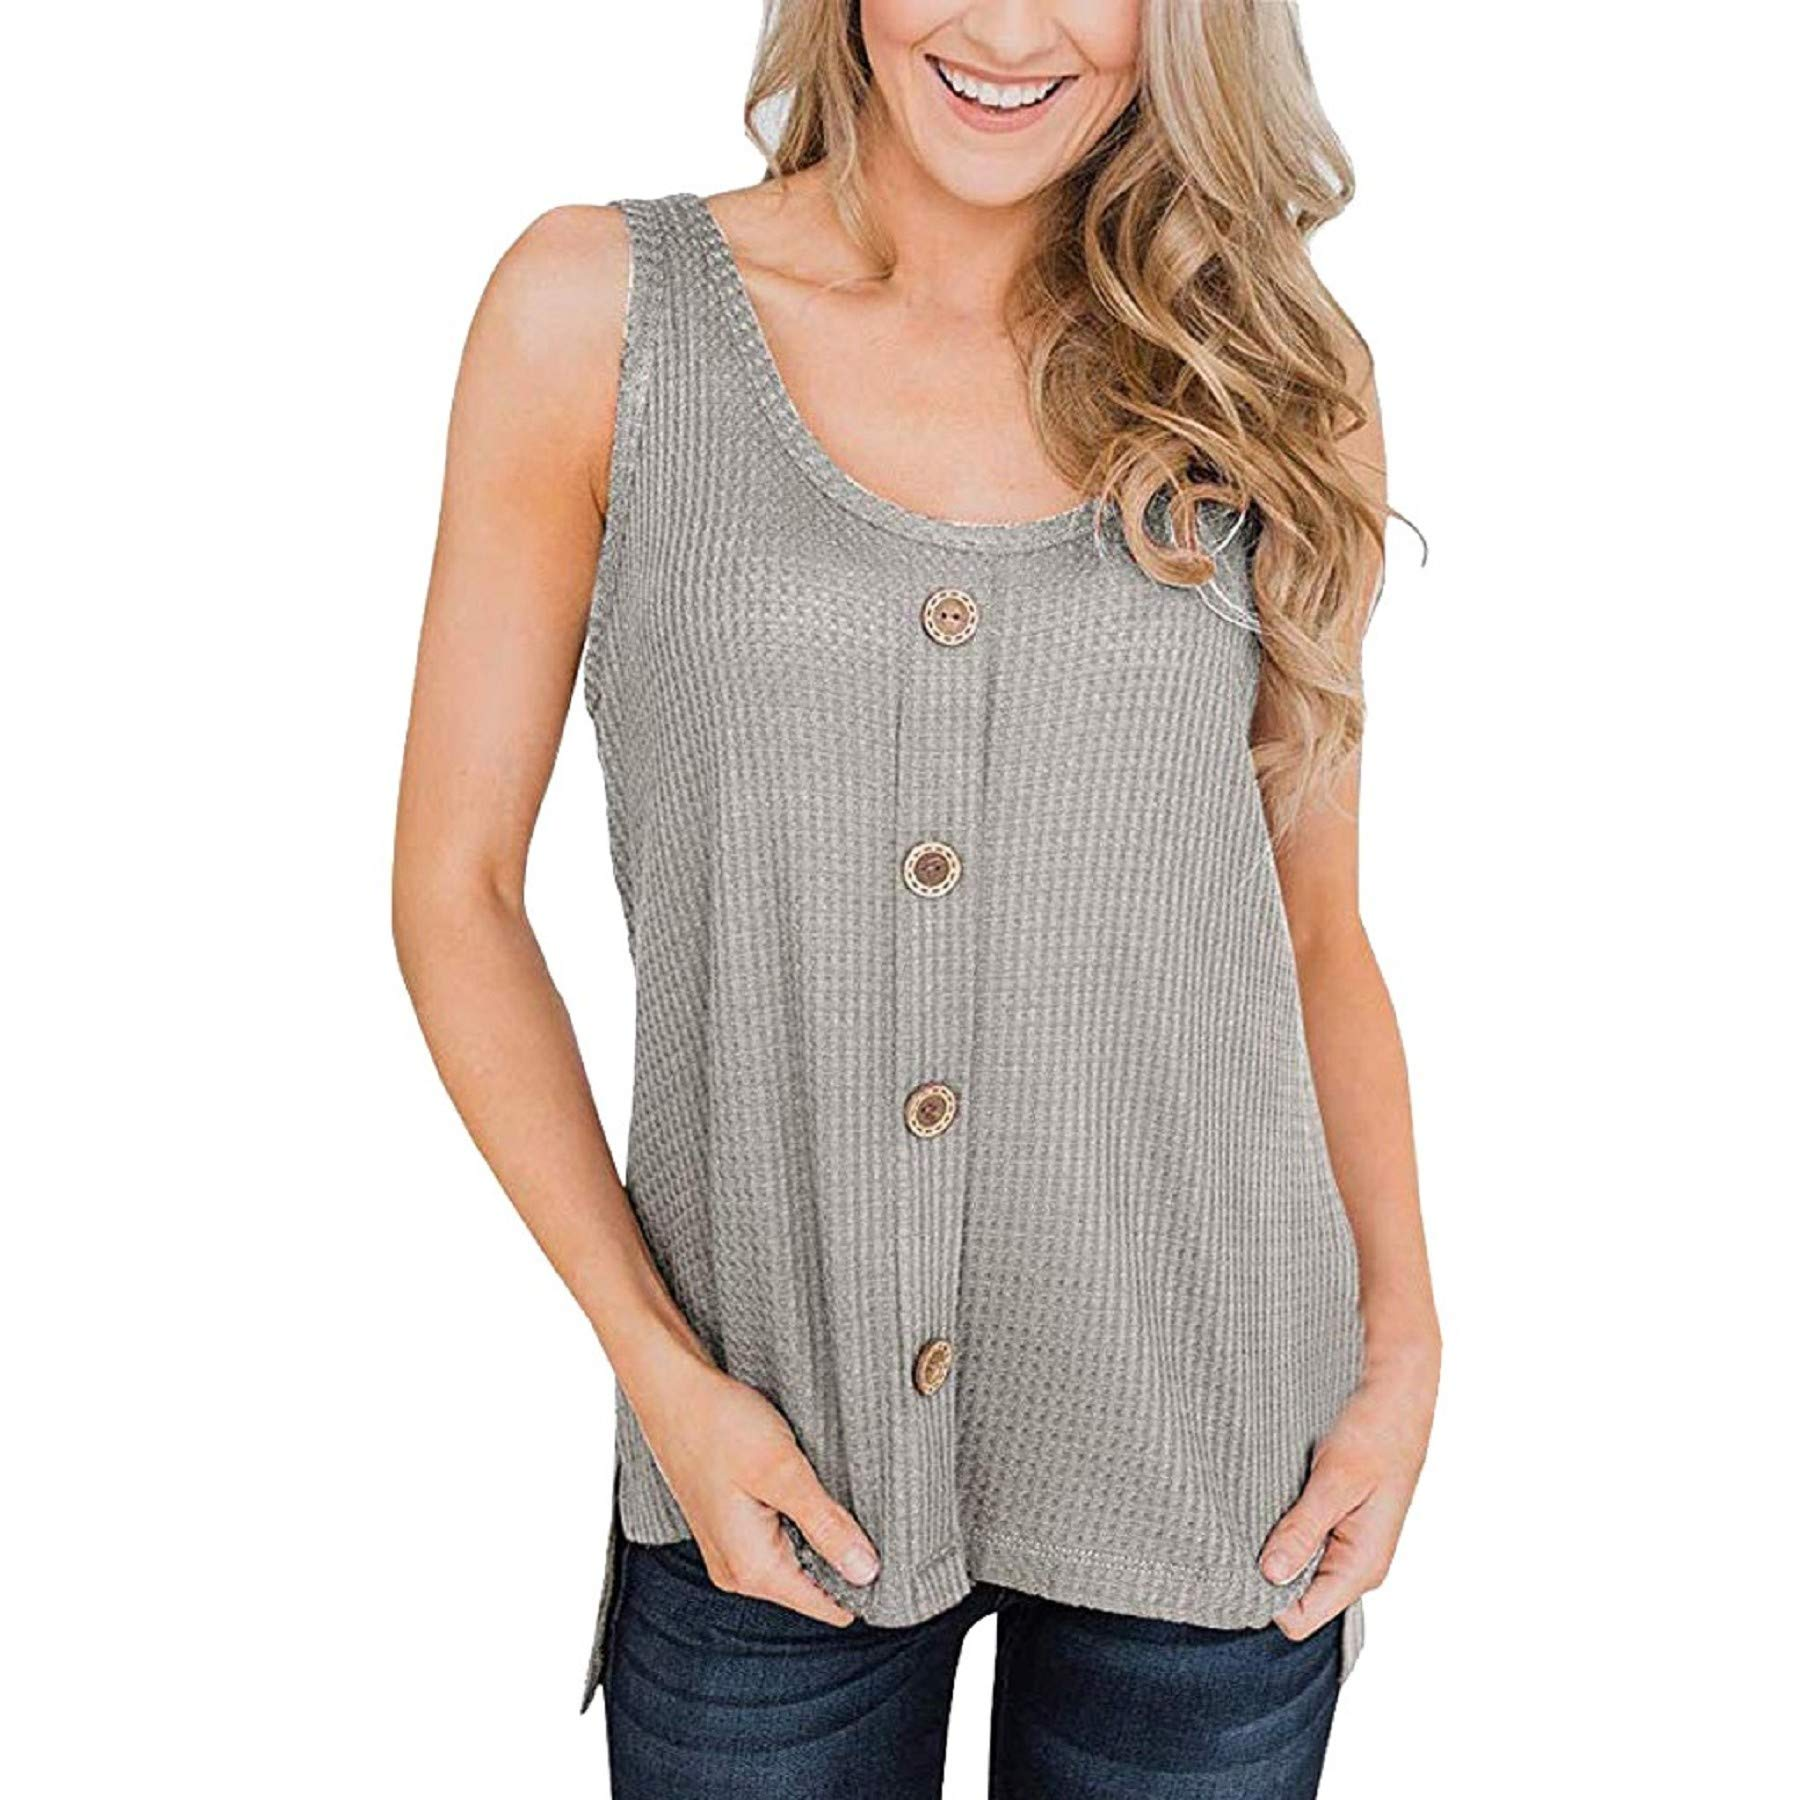 Womens Waffle Knit Tunic Blouse Sleeveless Button Up Tops Casual Summer Loose Fitting Shirts Blouses Gray